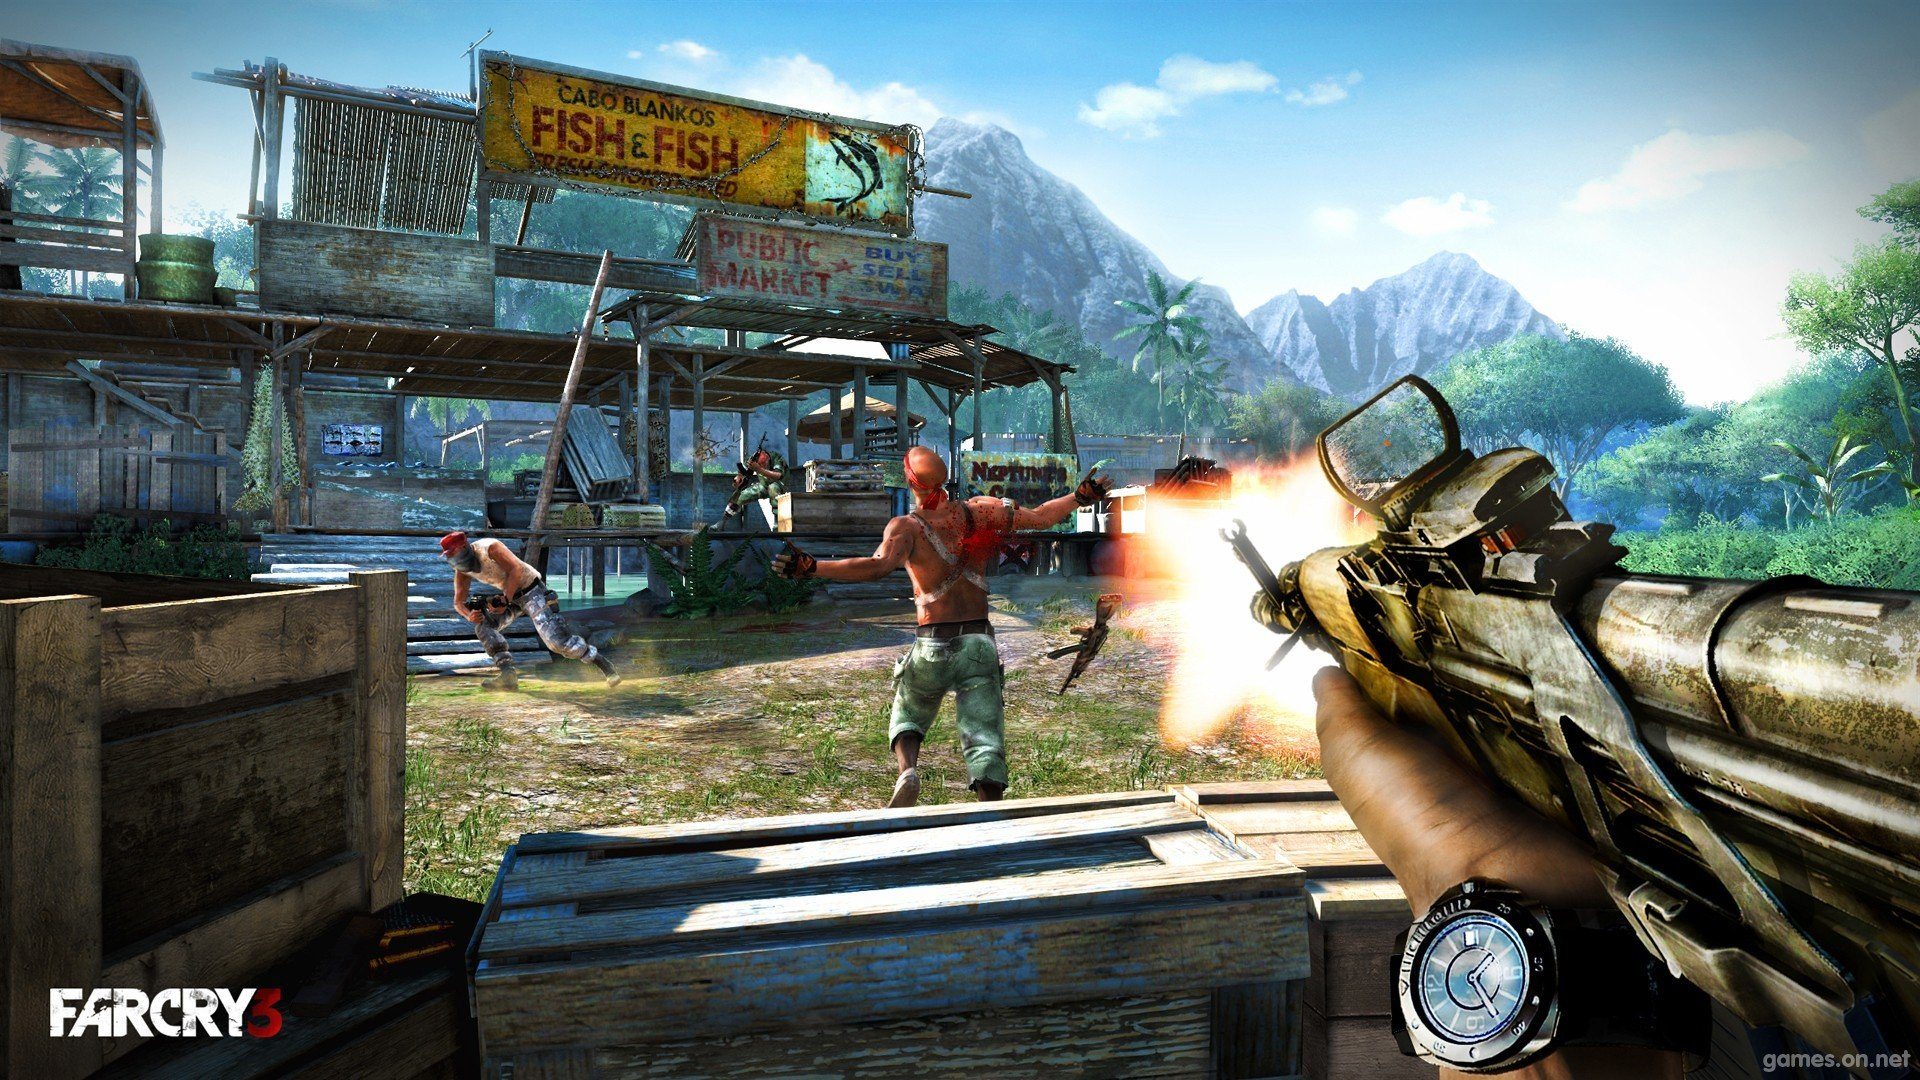 Far Cry 3 Wallpapers 1920x1080 Full Hd 1080p Desktop Backgrounds